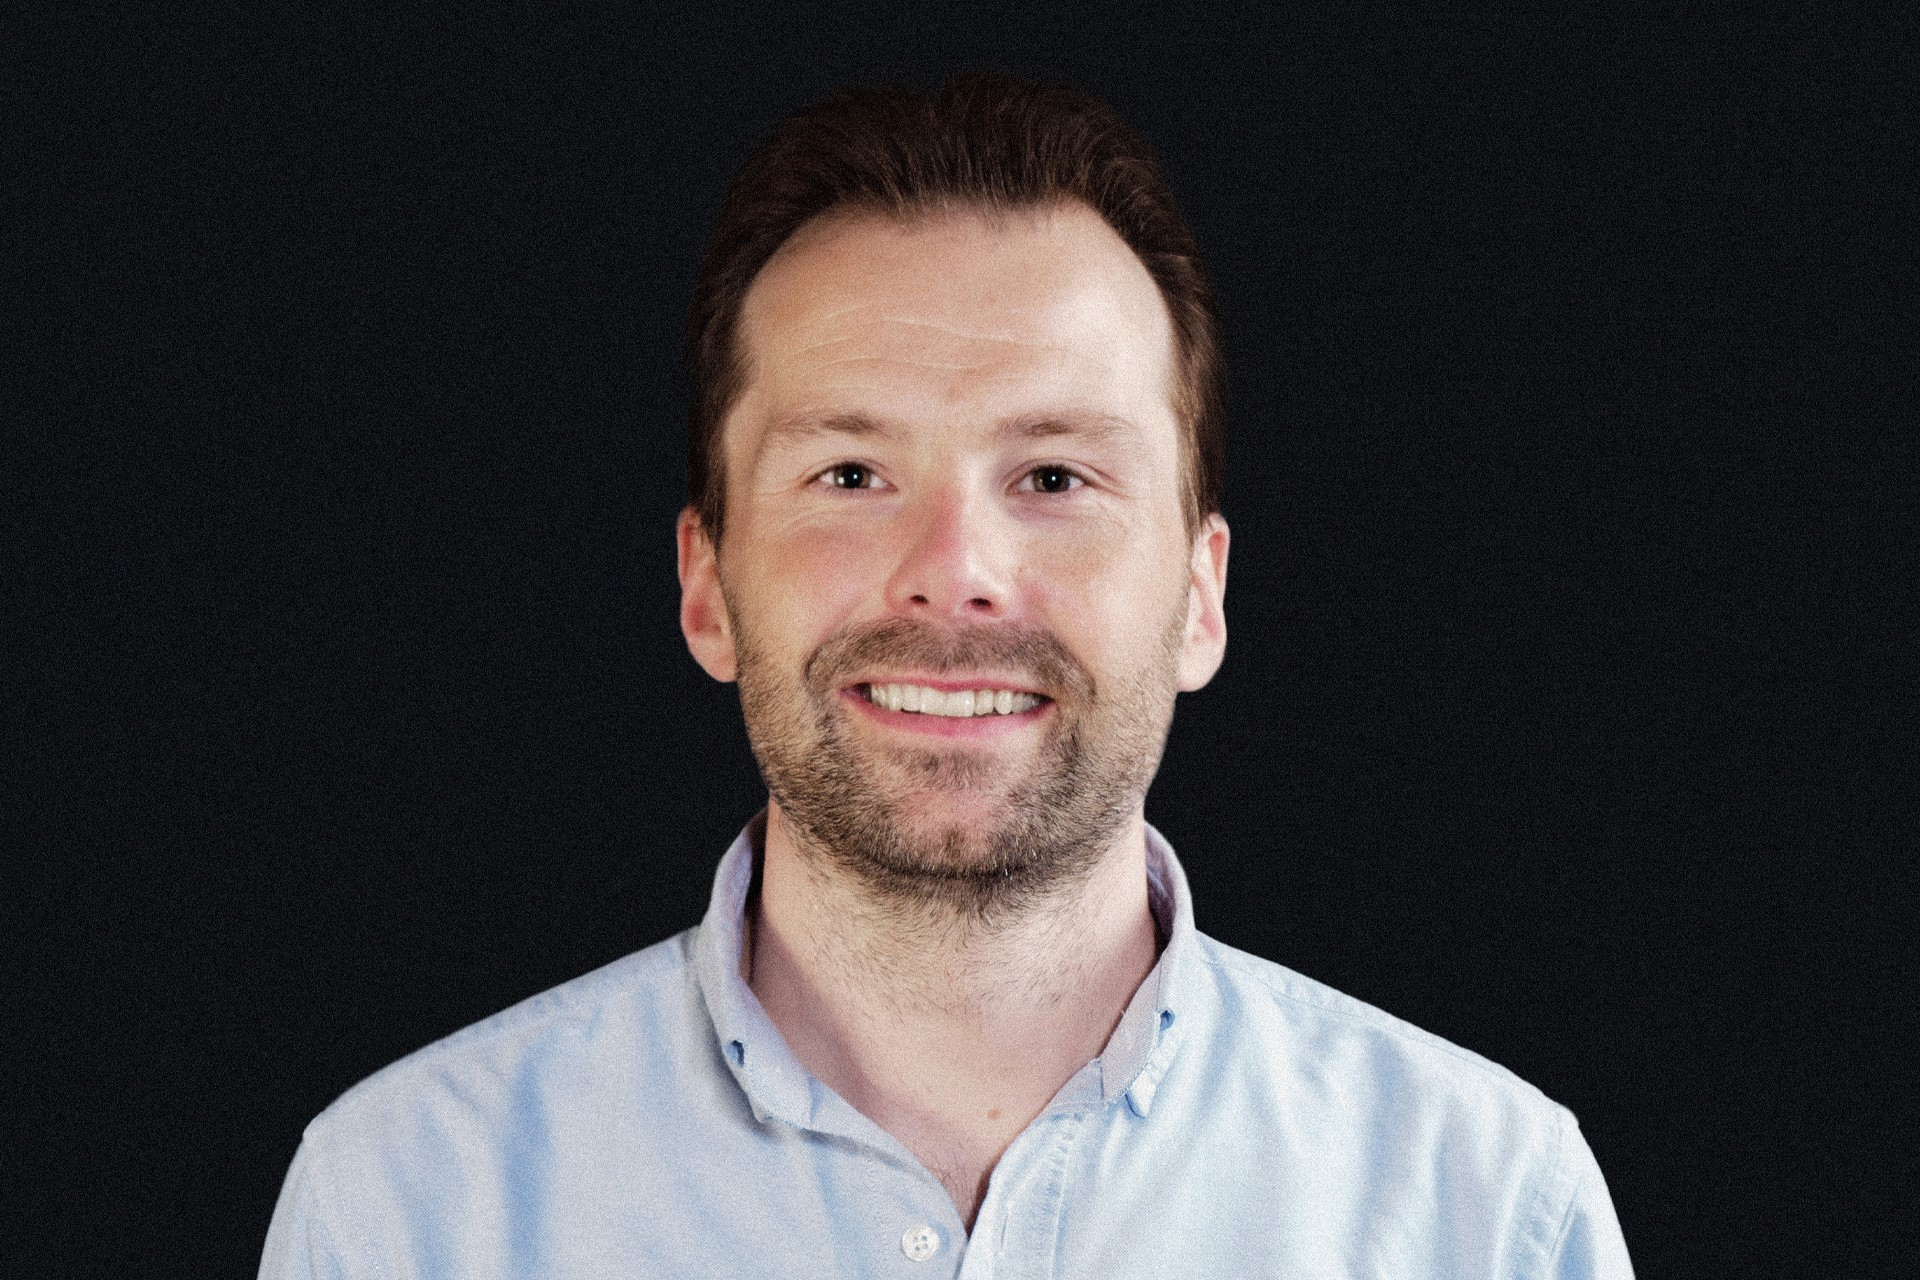 Mollie Appoints Rogier Schoute as Chief Product Officer